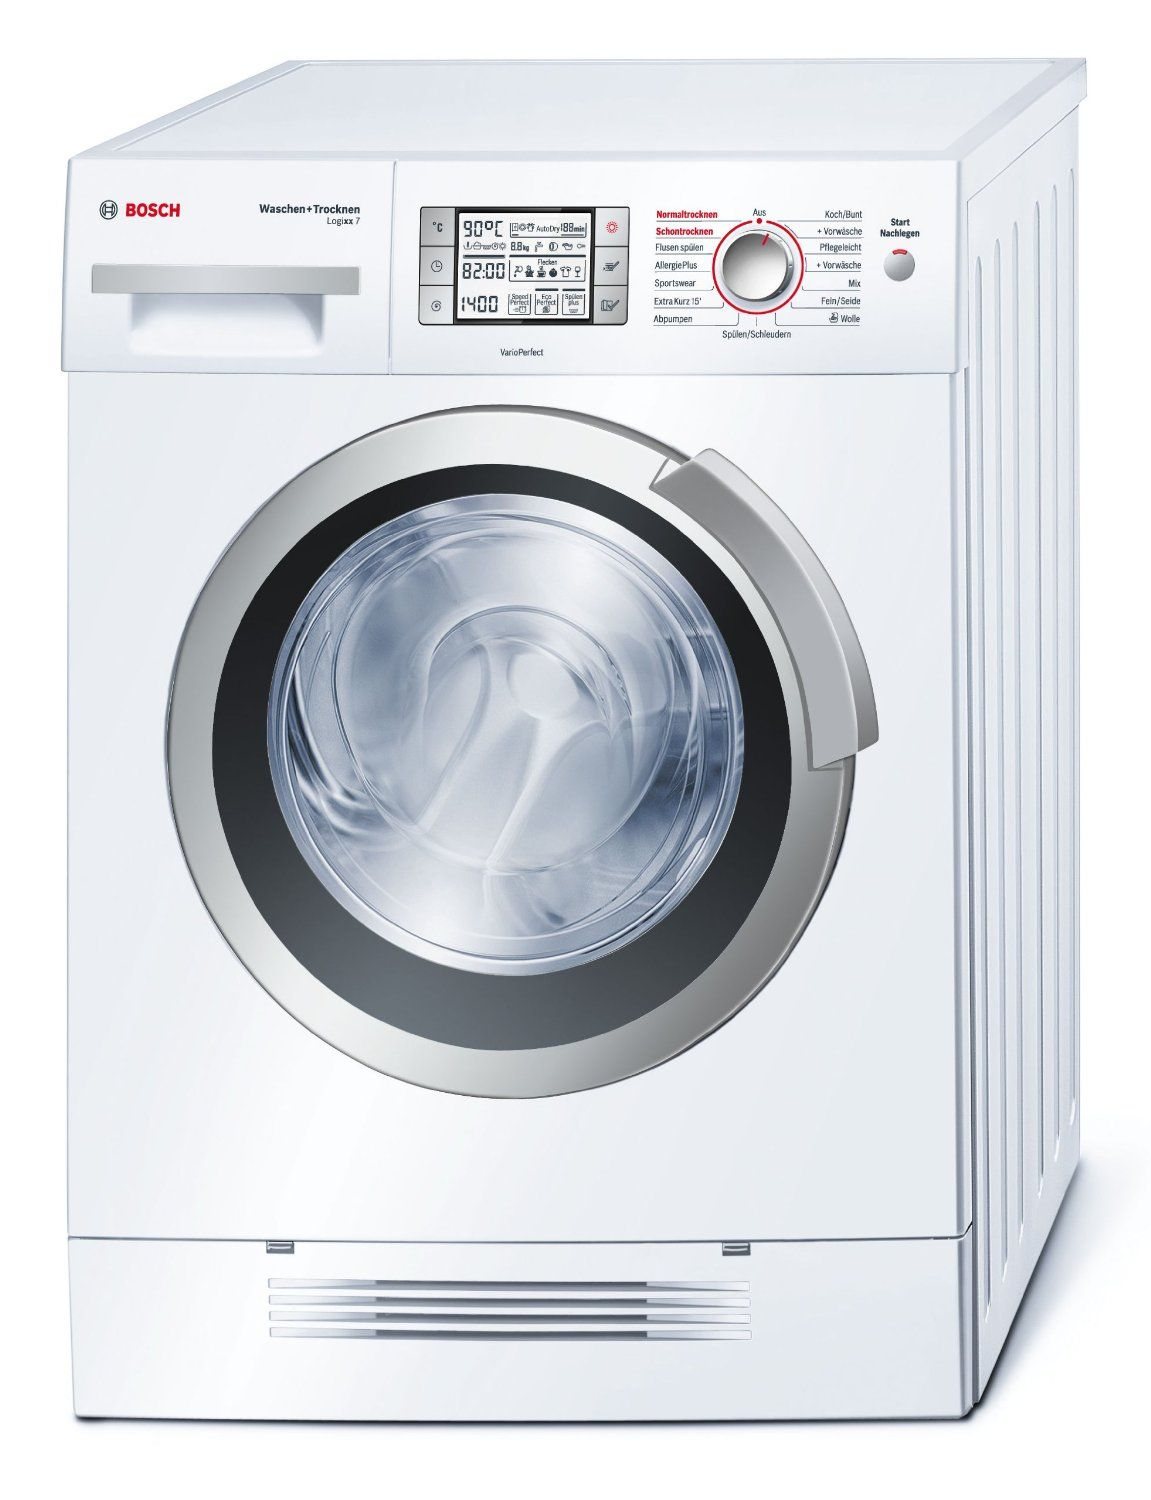 Avail top models of Bosch washing machine online at your